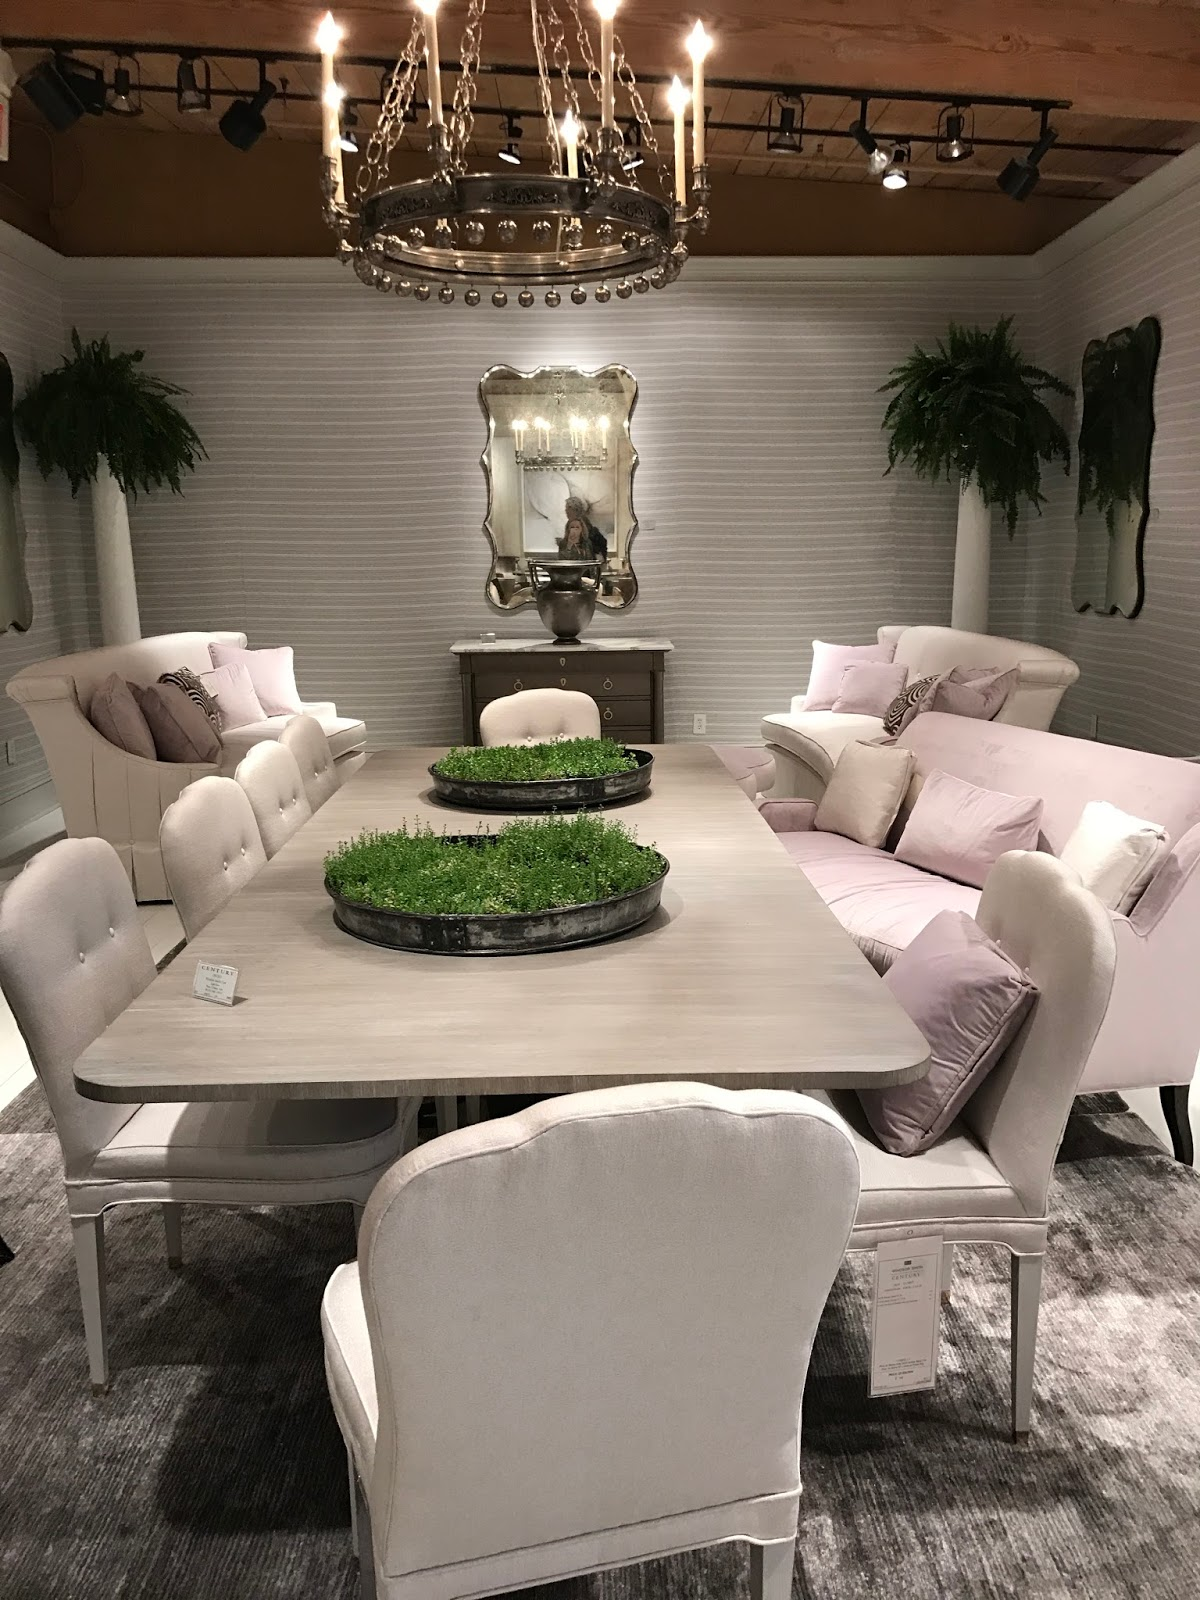 A new dining table and chairs were